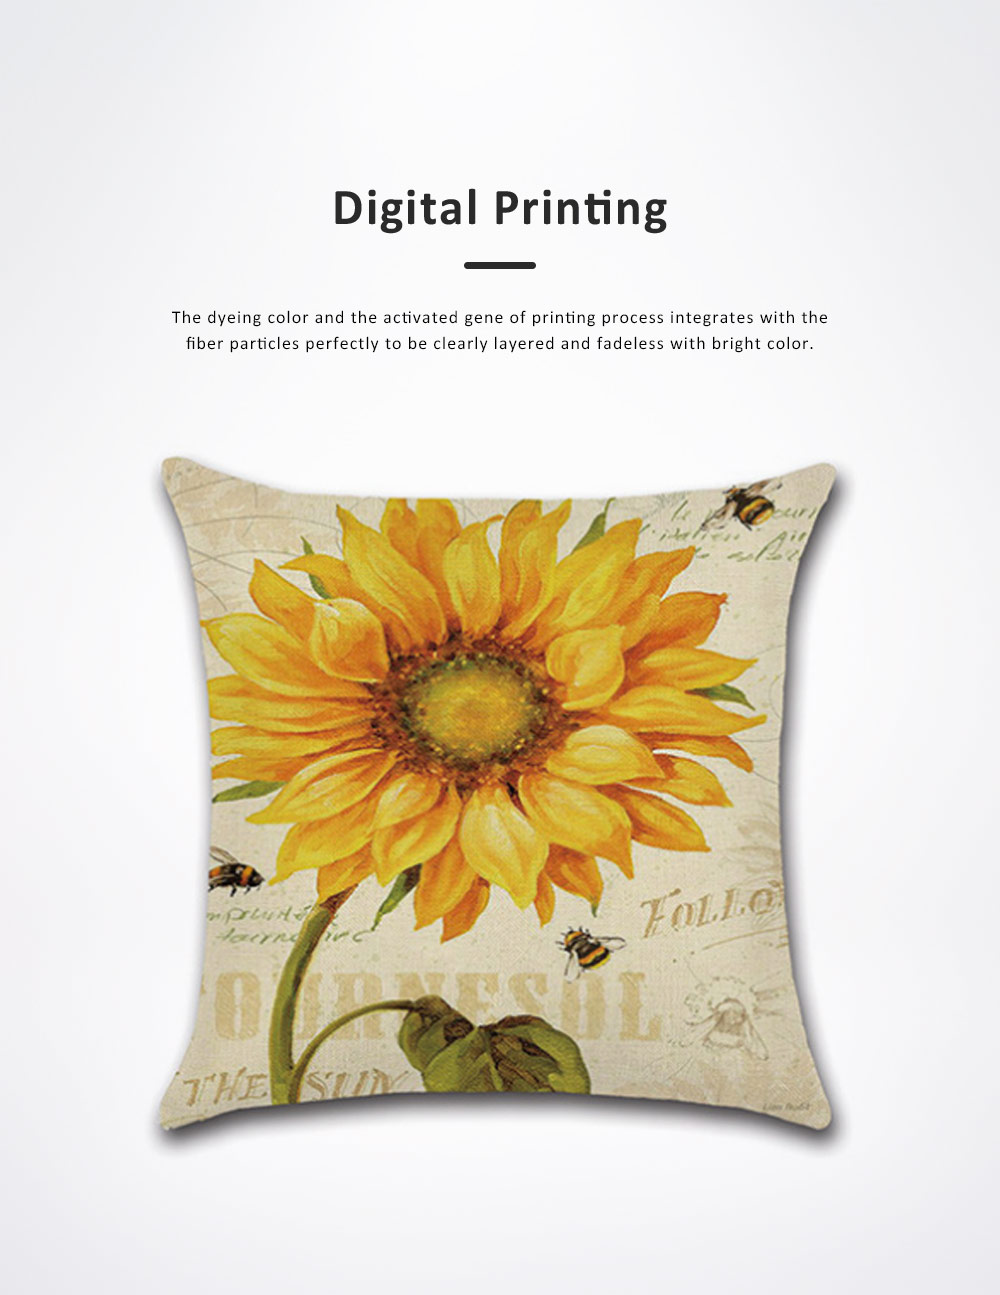 Sunflower Series Hand-painted Pillow Case, Back Leaning Cushion Cover for Home, Office, Car Used Pillow Linen Cover 2